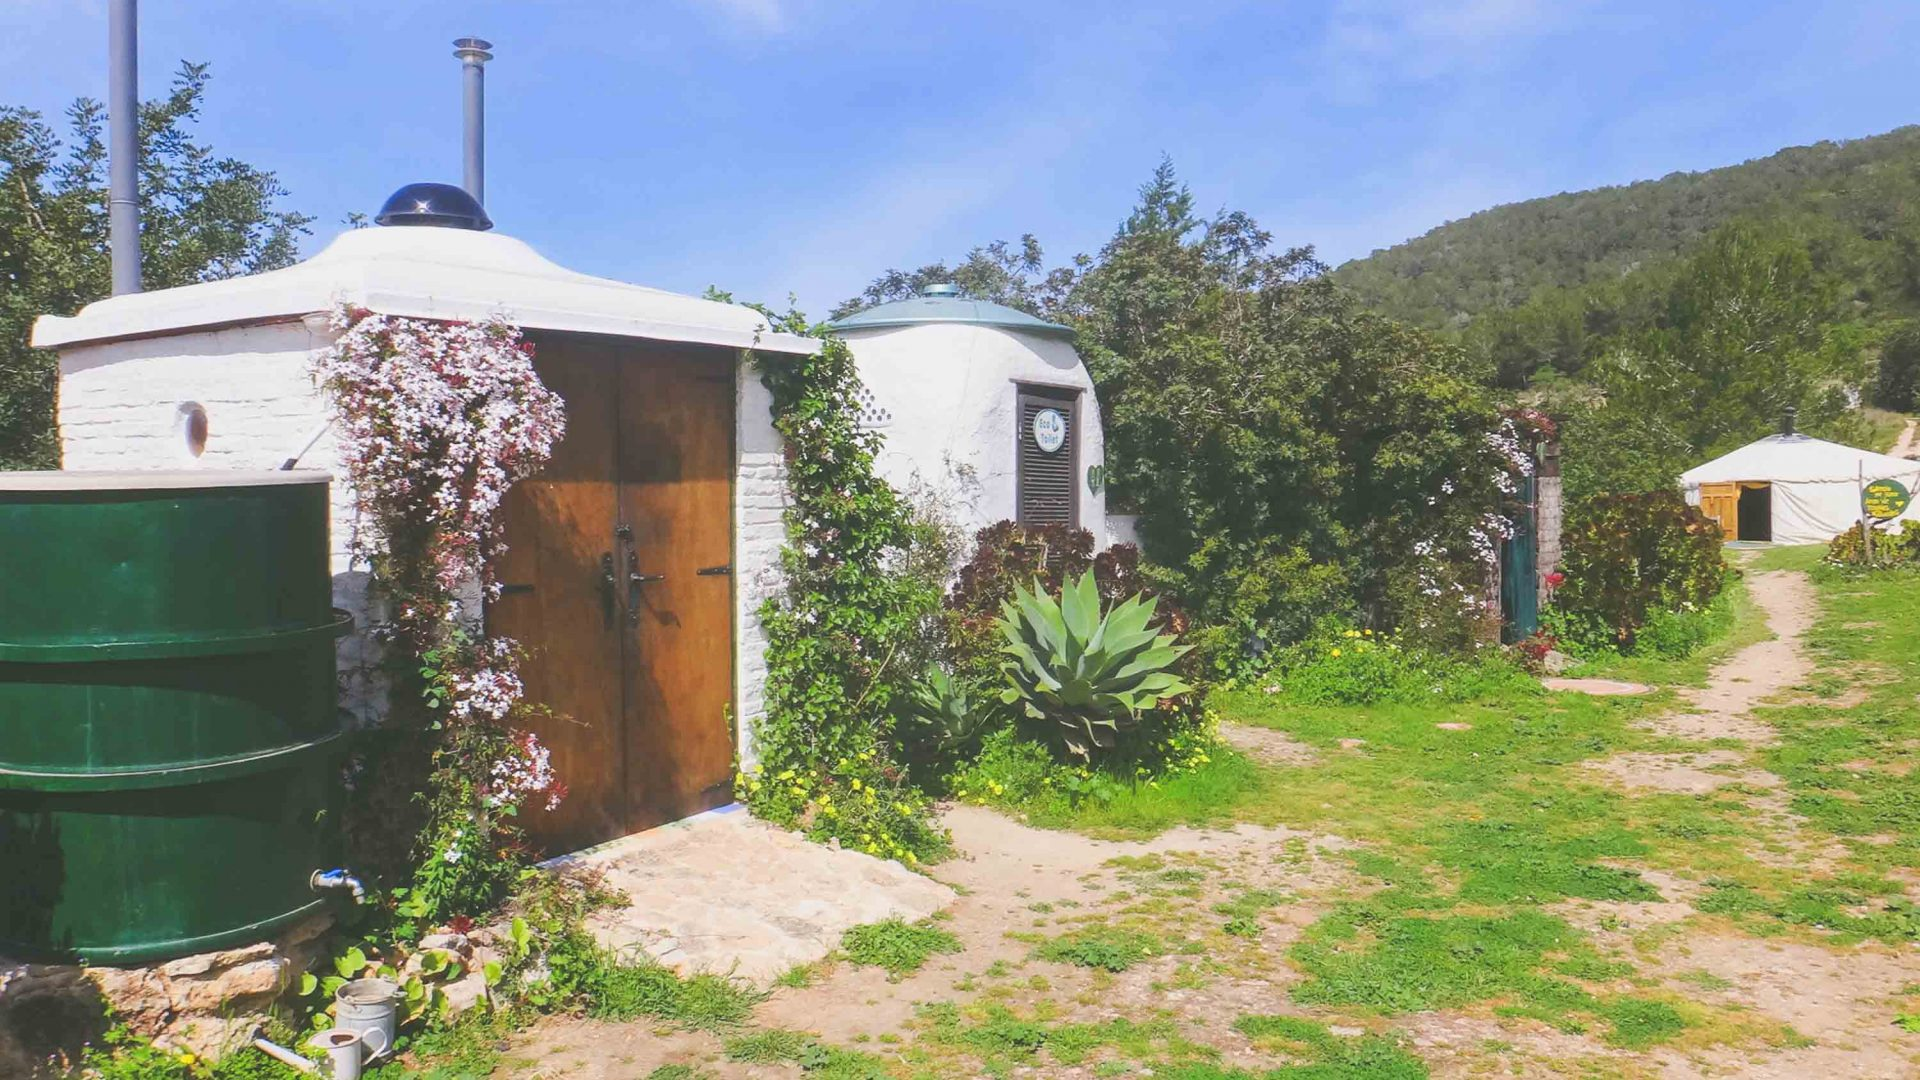 The eco toilet suite at Casita Verde.